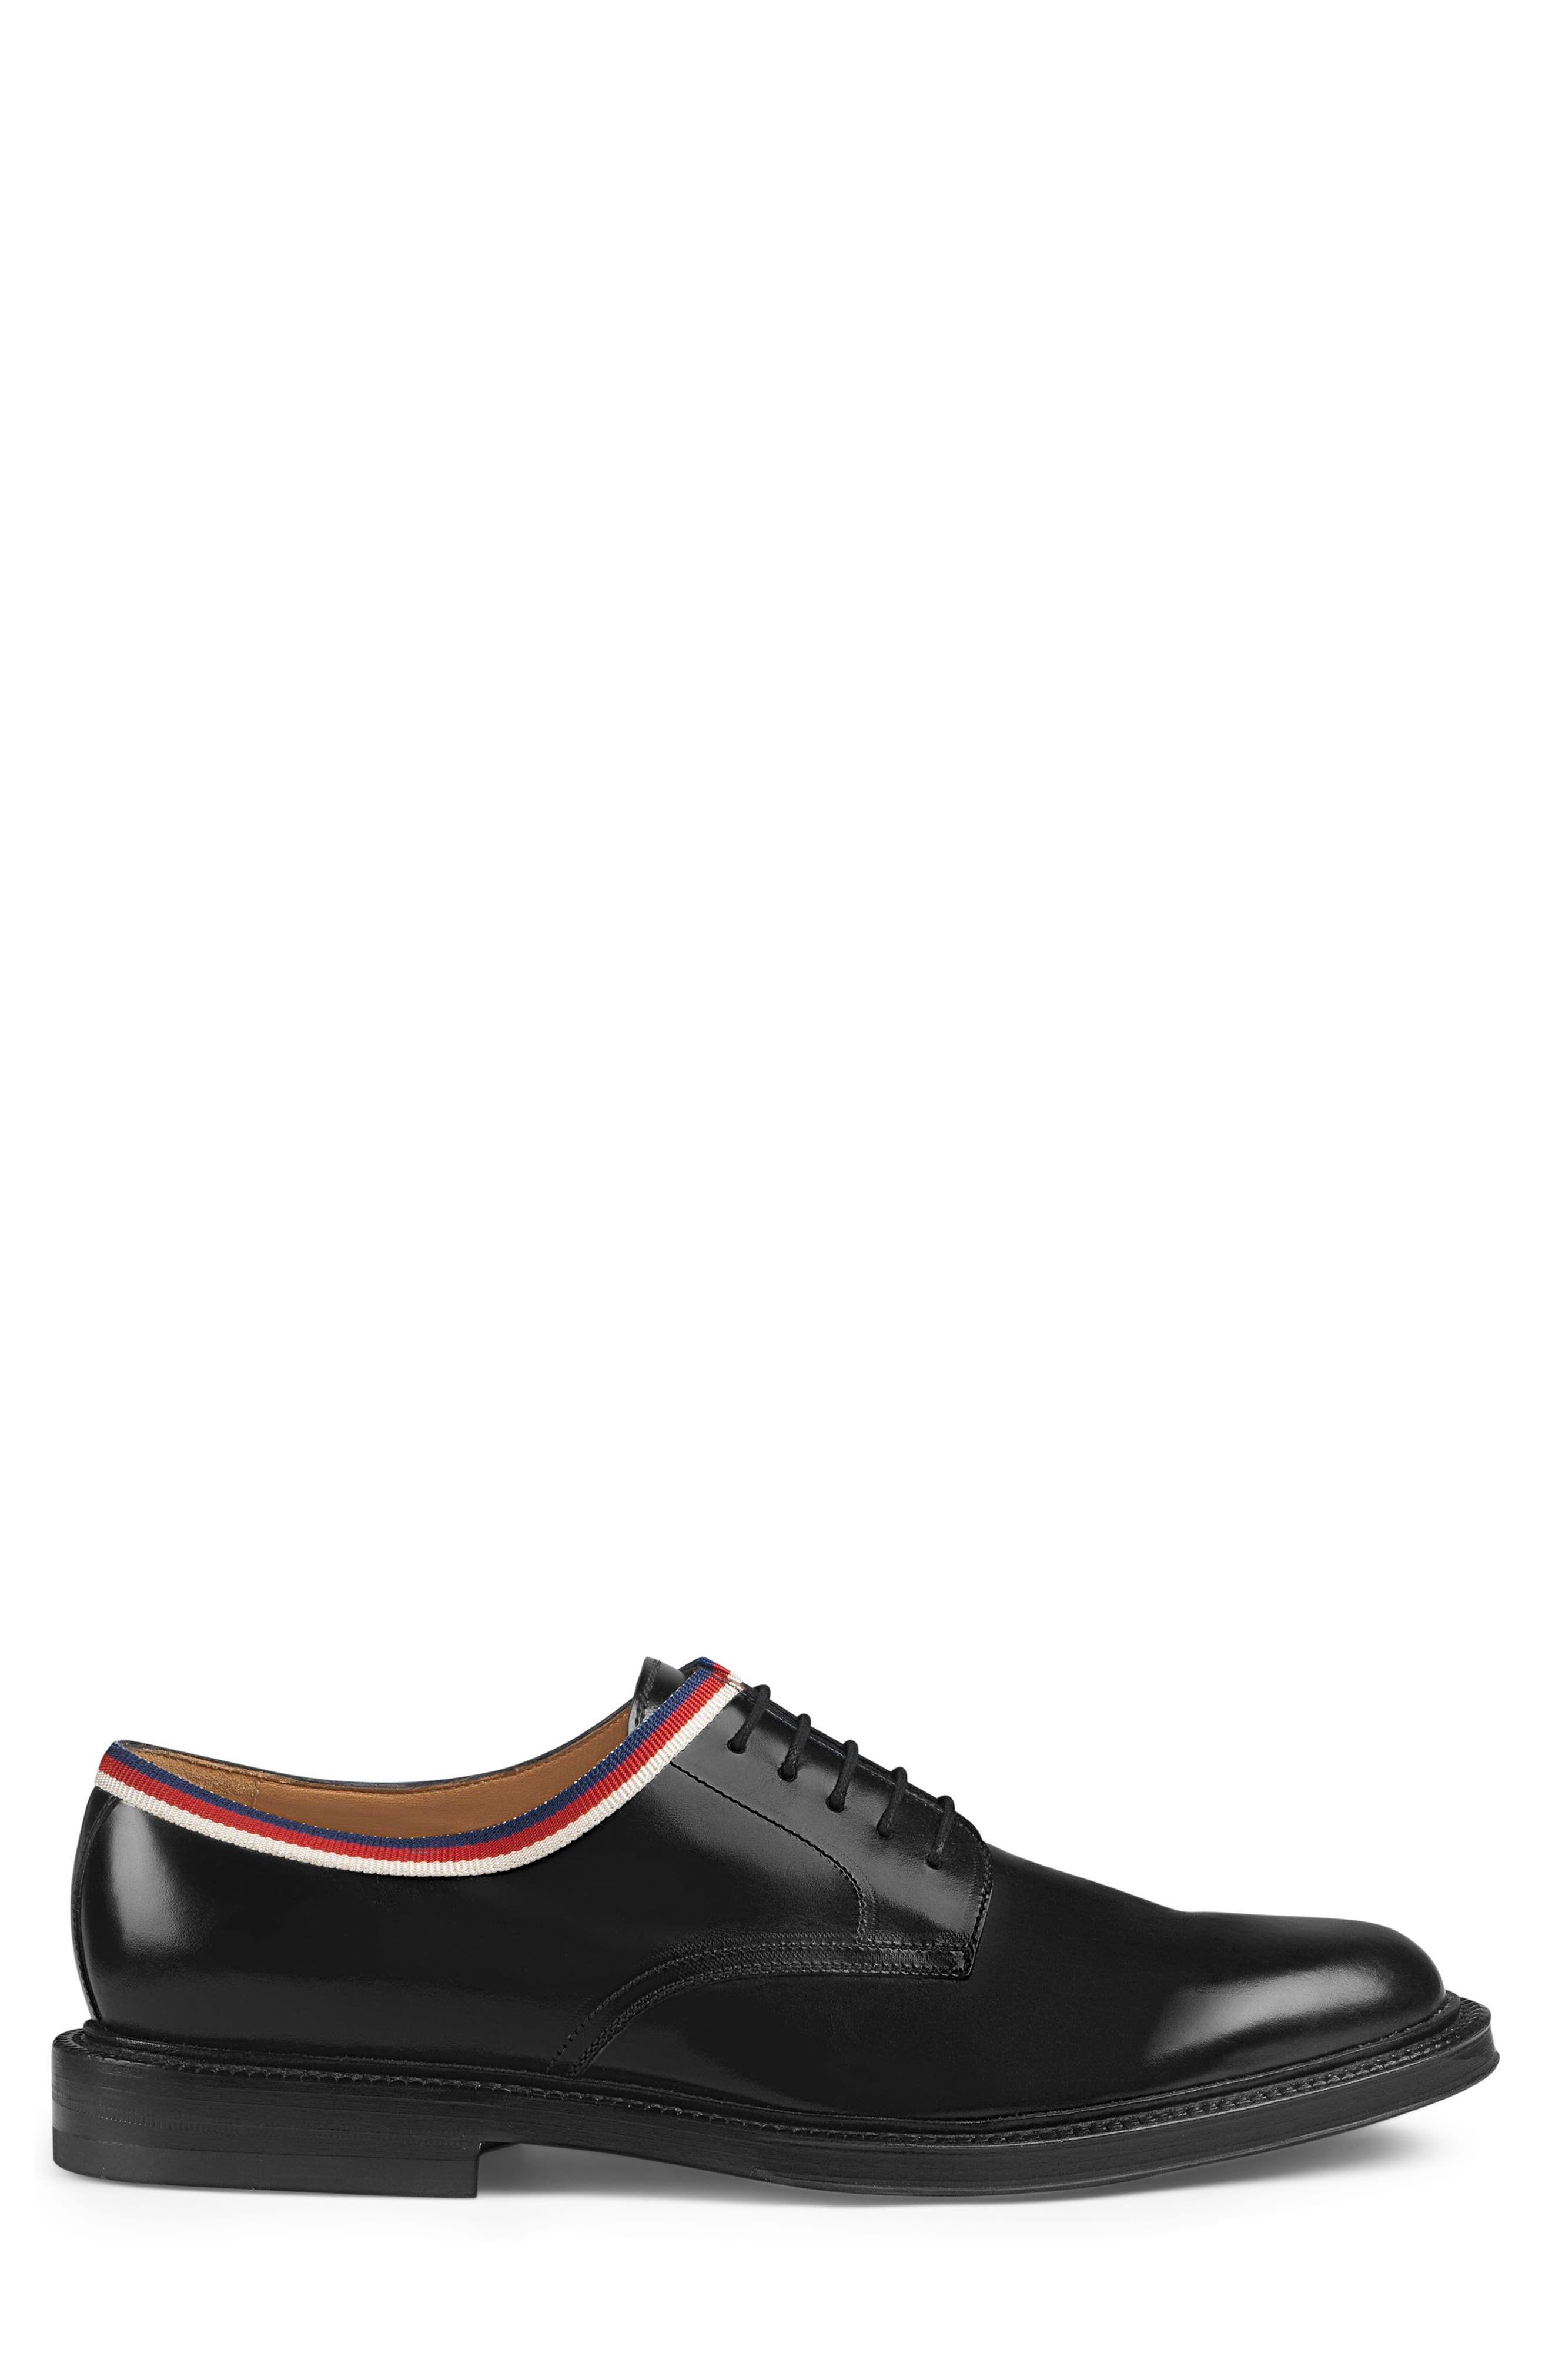 Gucci Men's Beyond Brb Band Laced Derby